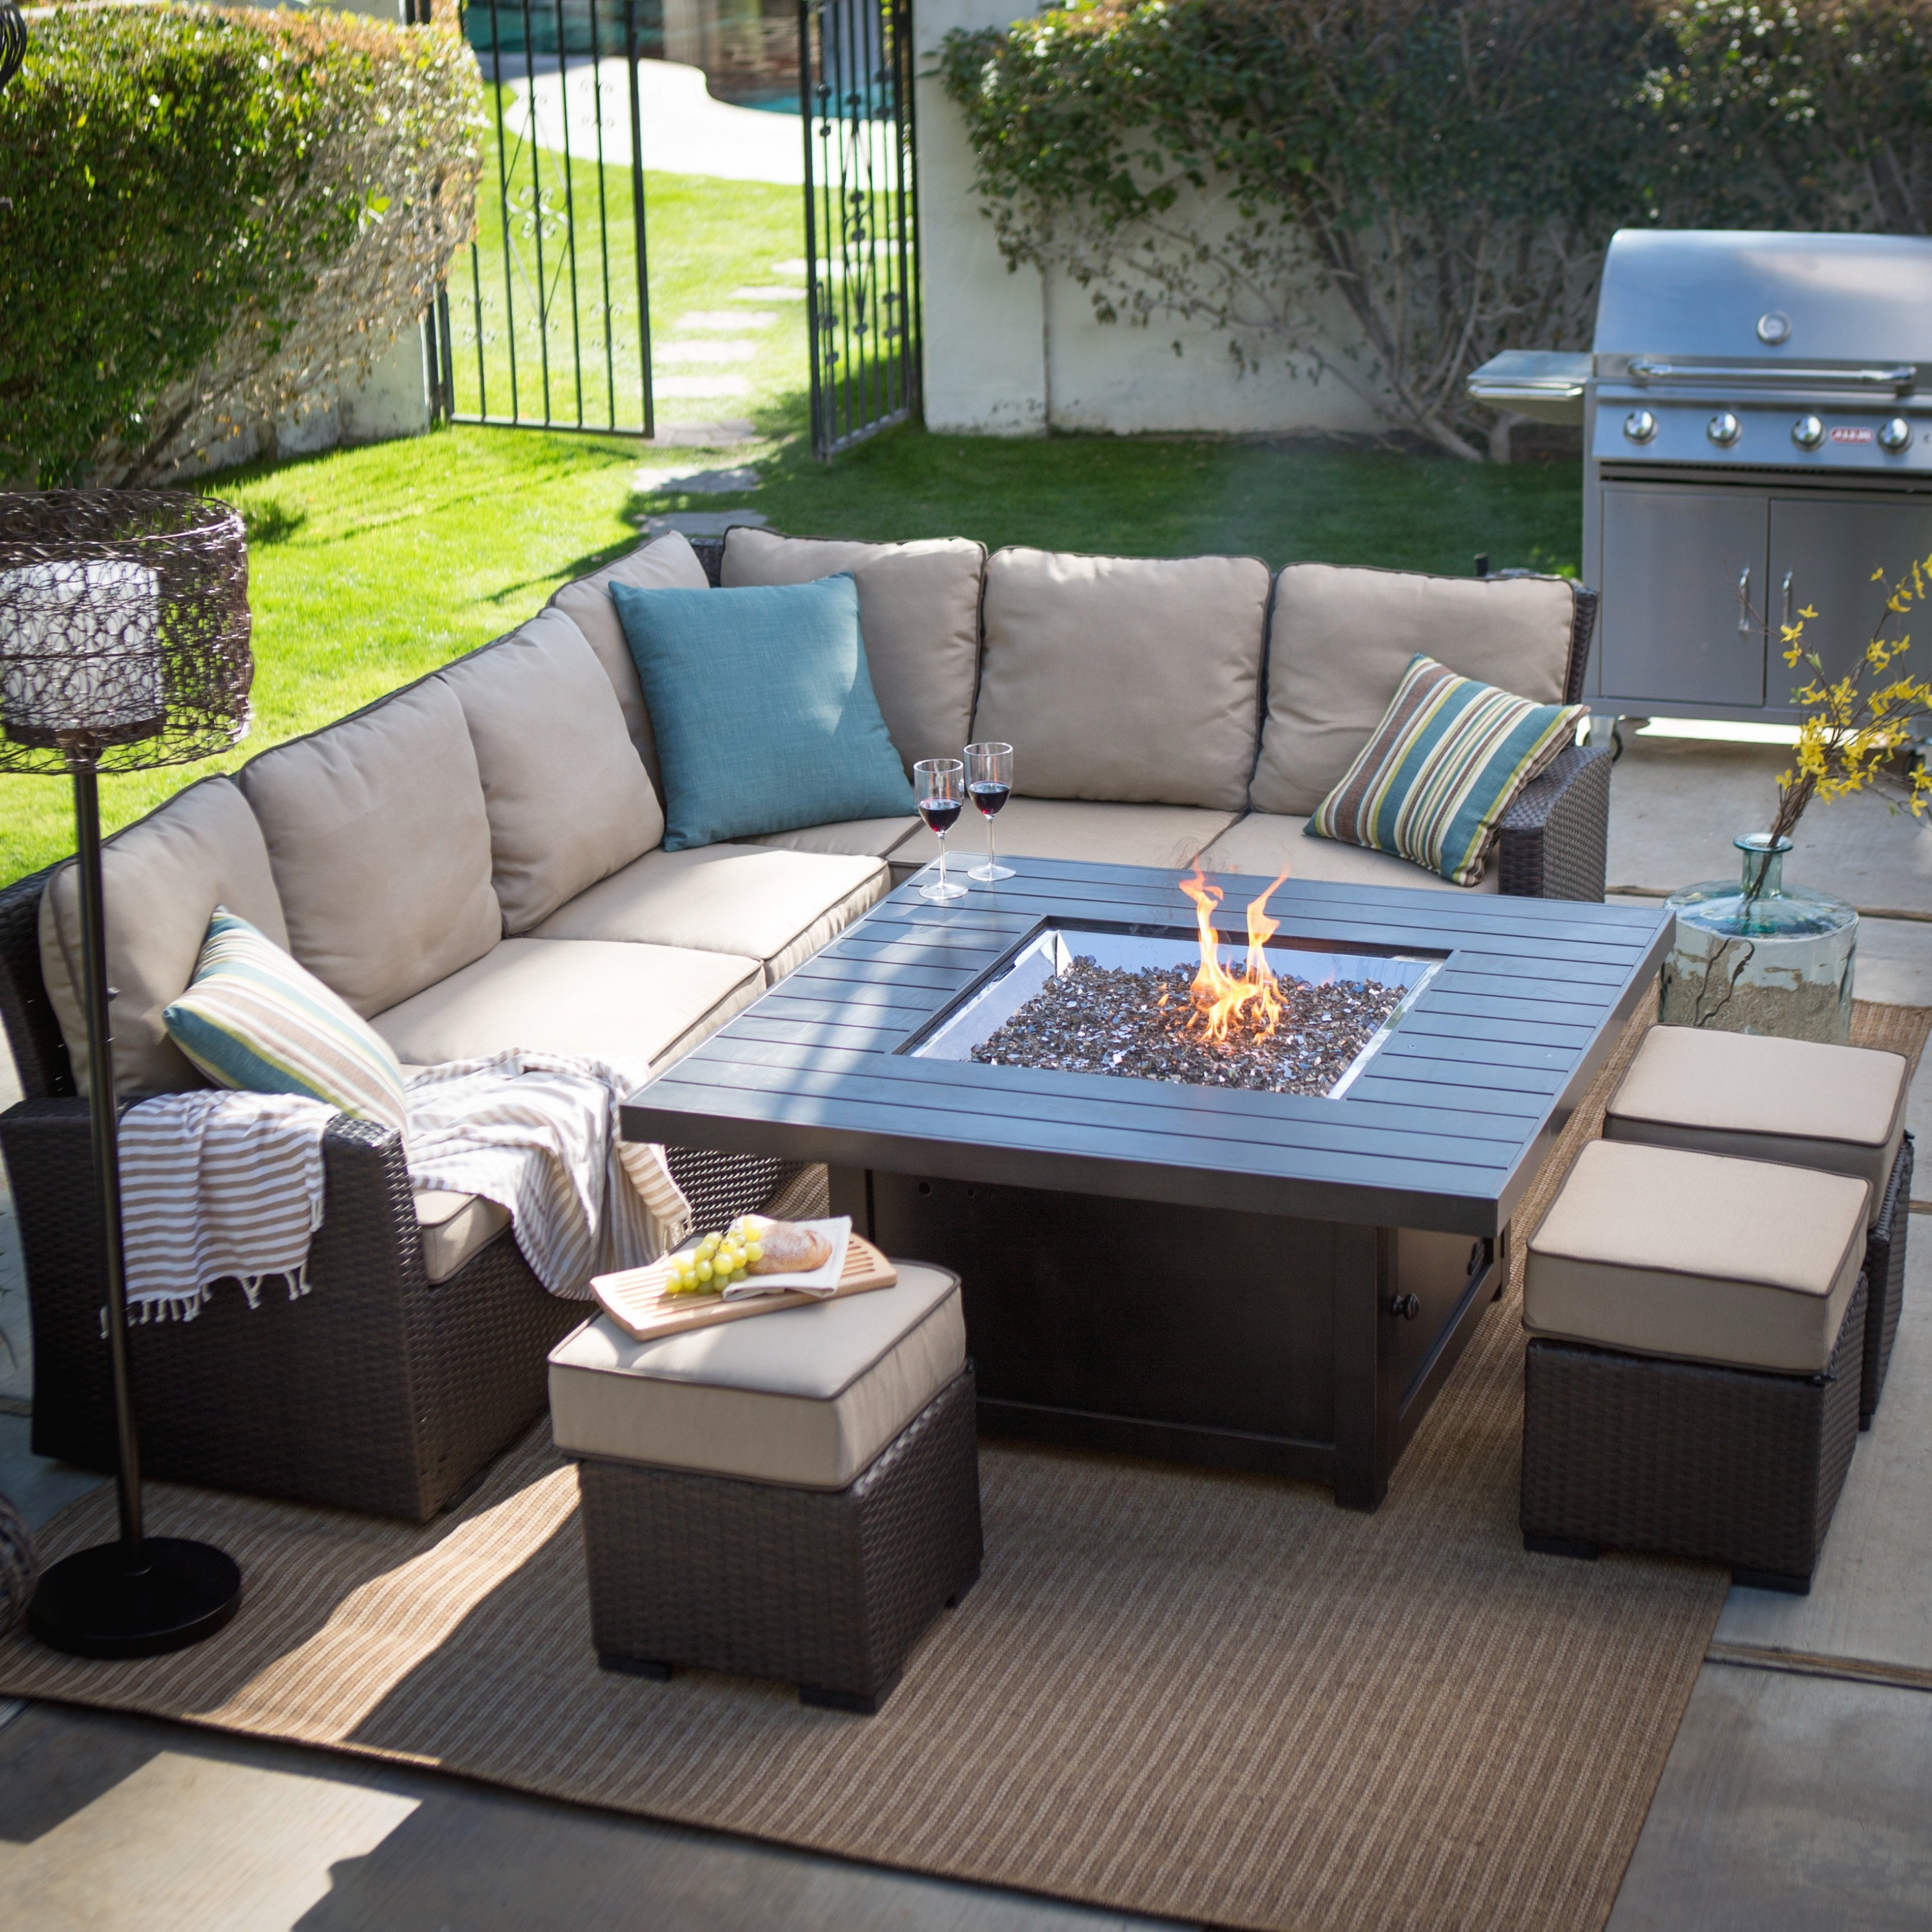 Patio Conversation Sets With Fire Pit Regarding Well Liked Revisited Fire Pit Conversation Sets Shrewd Patio Furniture Decor (View 8 of 15)